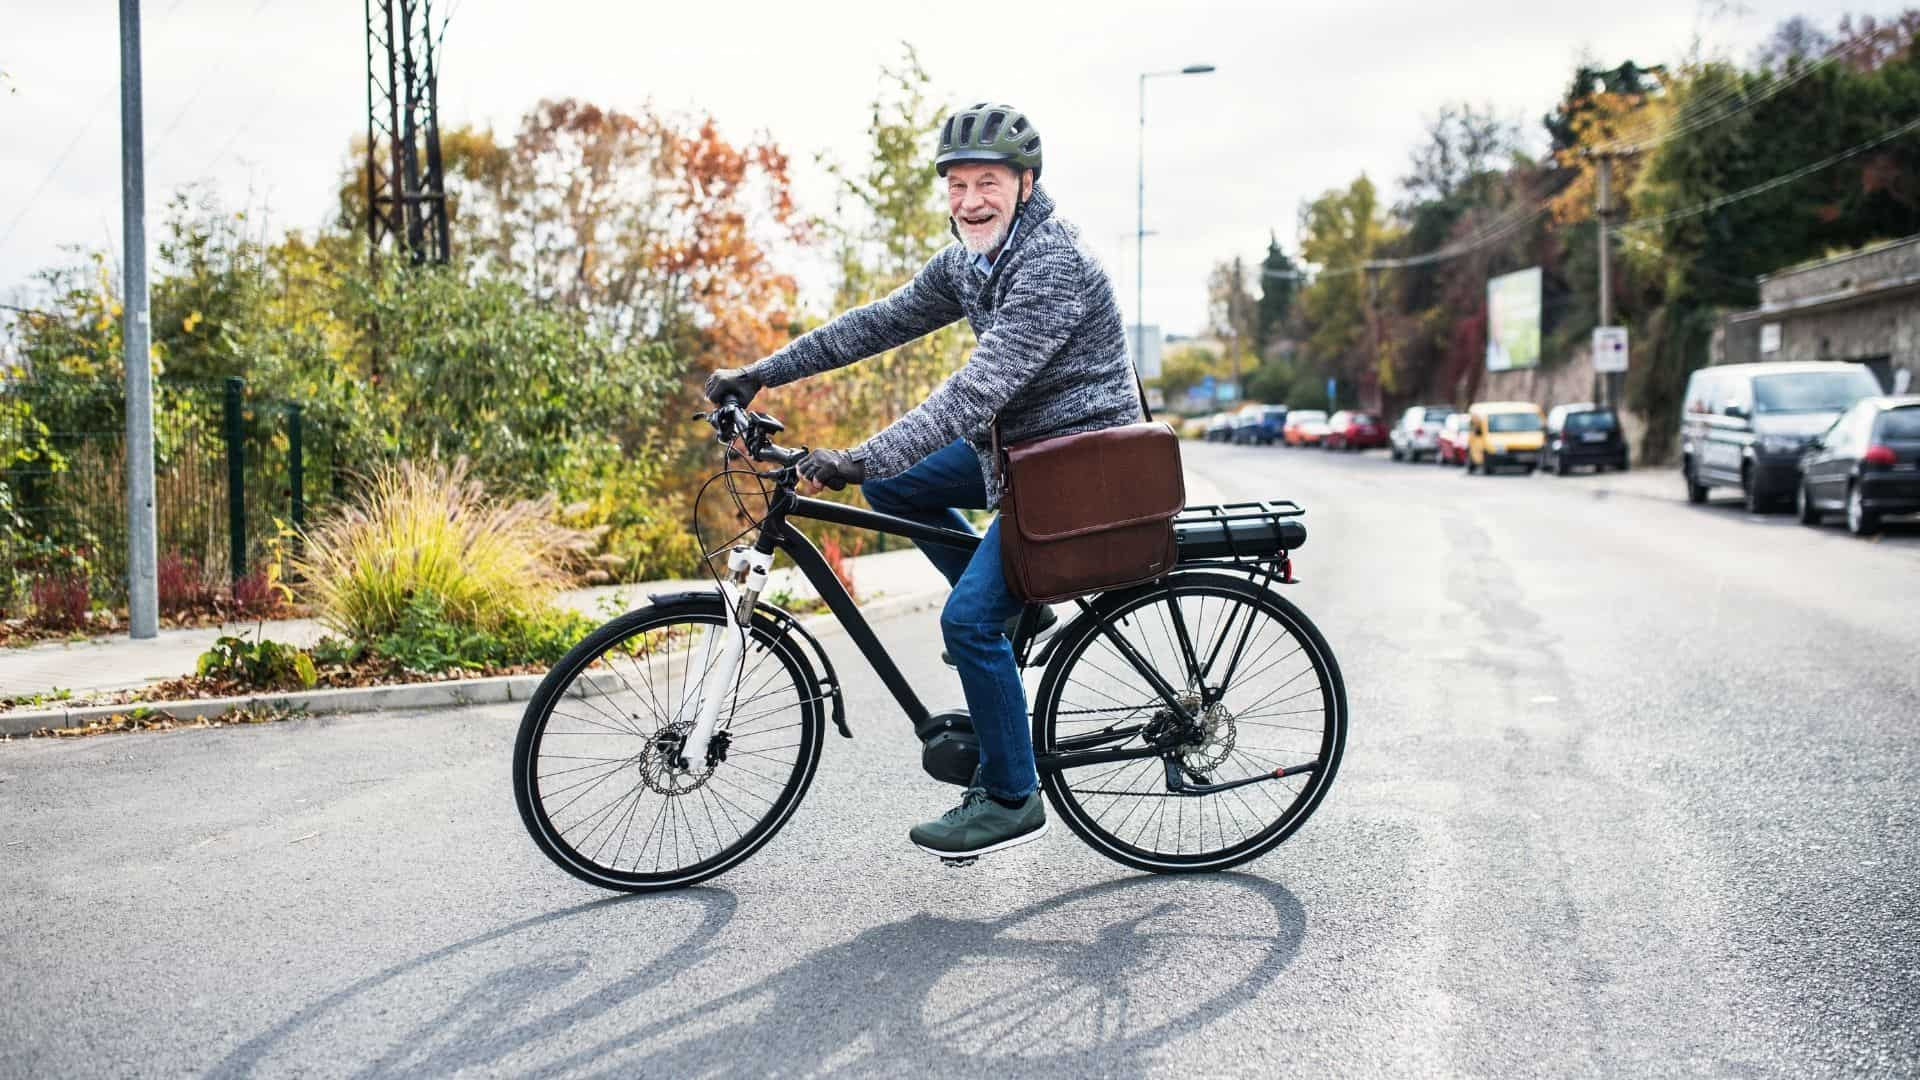 E-Bike Demographics